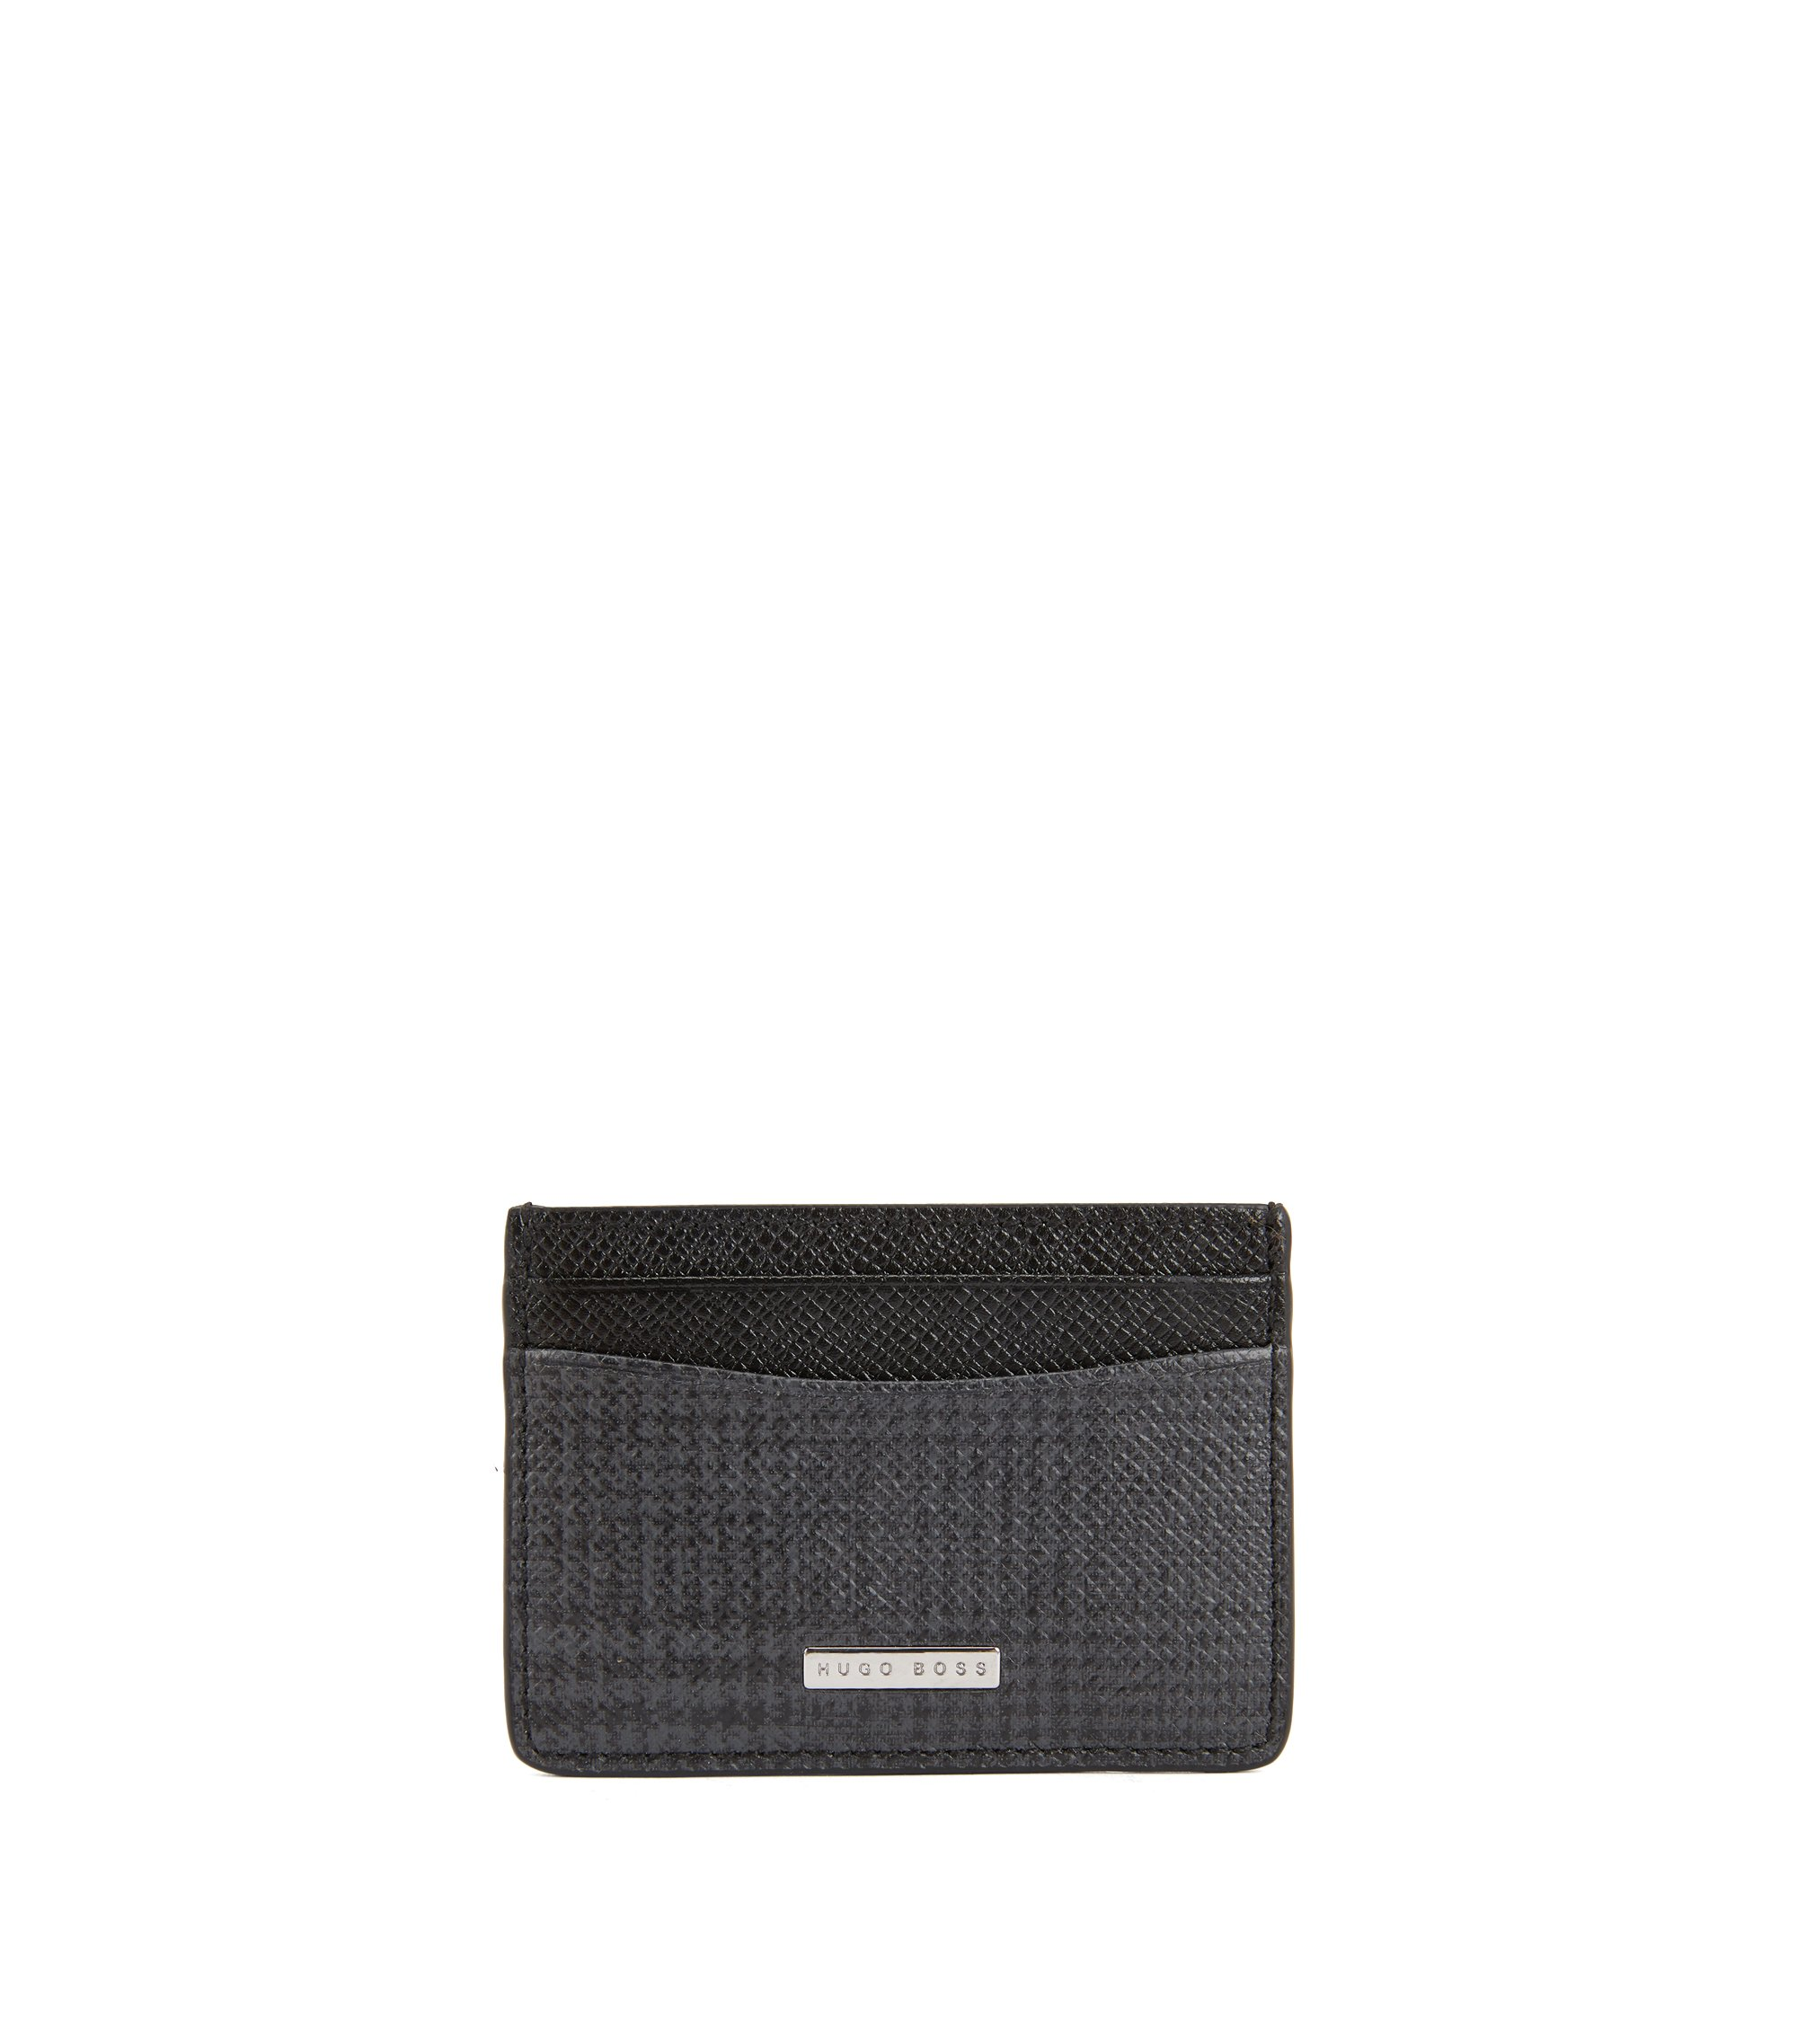 Signature Collection card holder in check-print calf leather, Patterned